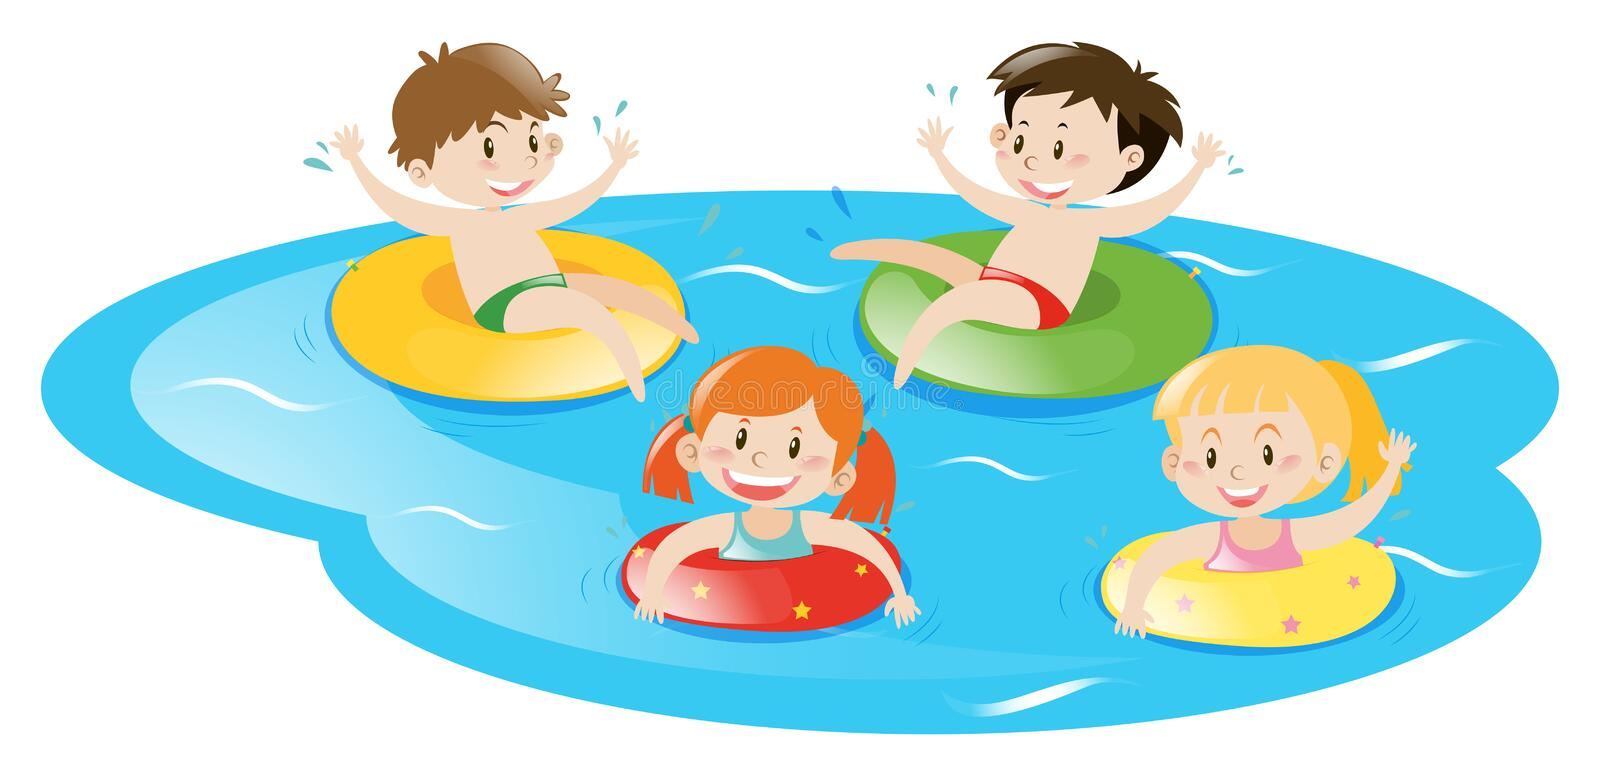 four kids swimming in pool stock vector illustration of student rh dreamstime com kids swimming clipart free Cartoon Swimming Pool